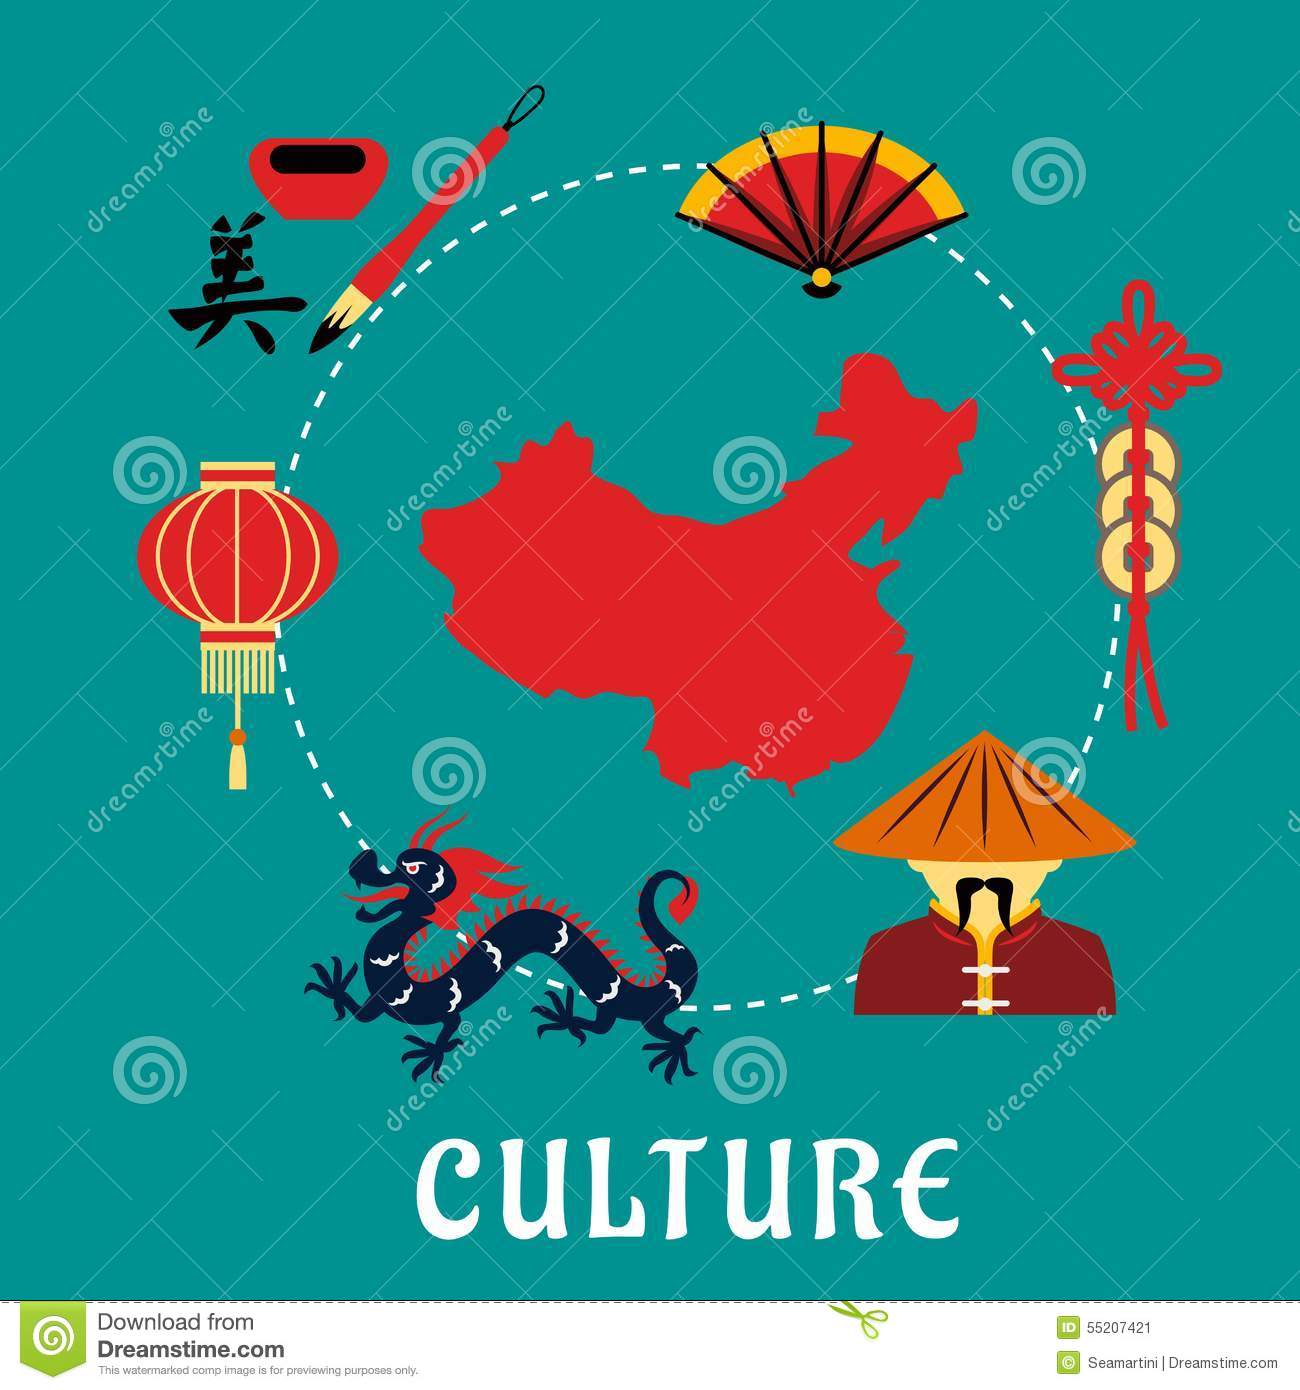 management culture china and united kingdom Uncertainty avoidance deals with a society's tolerance for uncertainty and ambiguity it ultimately refers to man's search for truth it indicates to what extent a culture programs its members to feel either uncomfortable or comfortable in unstructured situations.